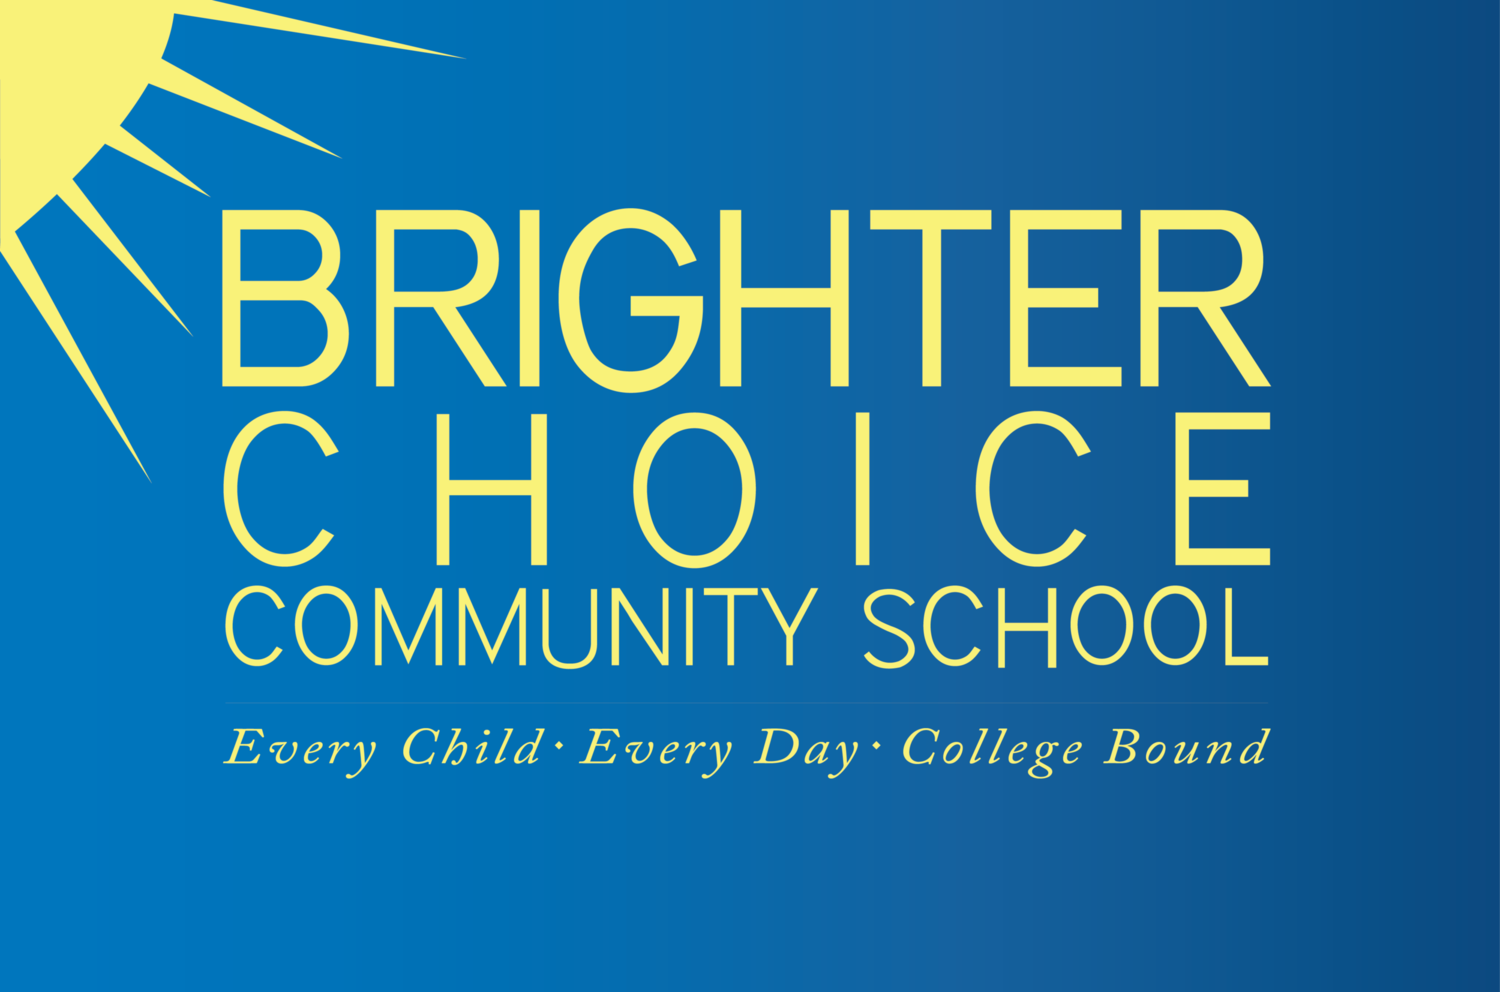 Brighter Choice Community School